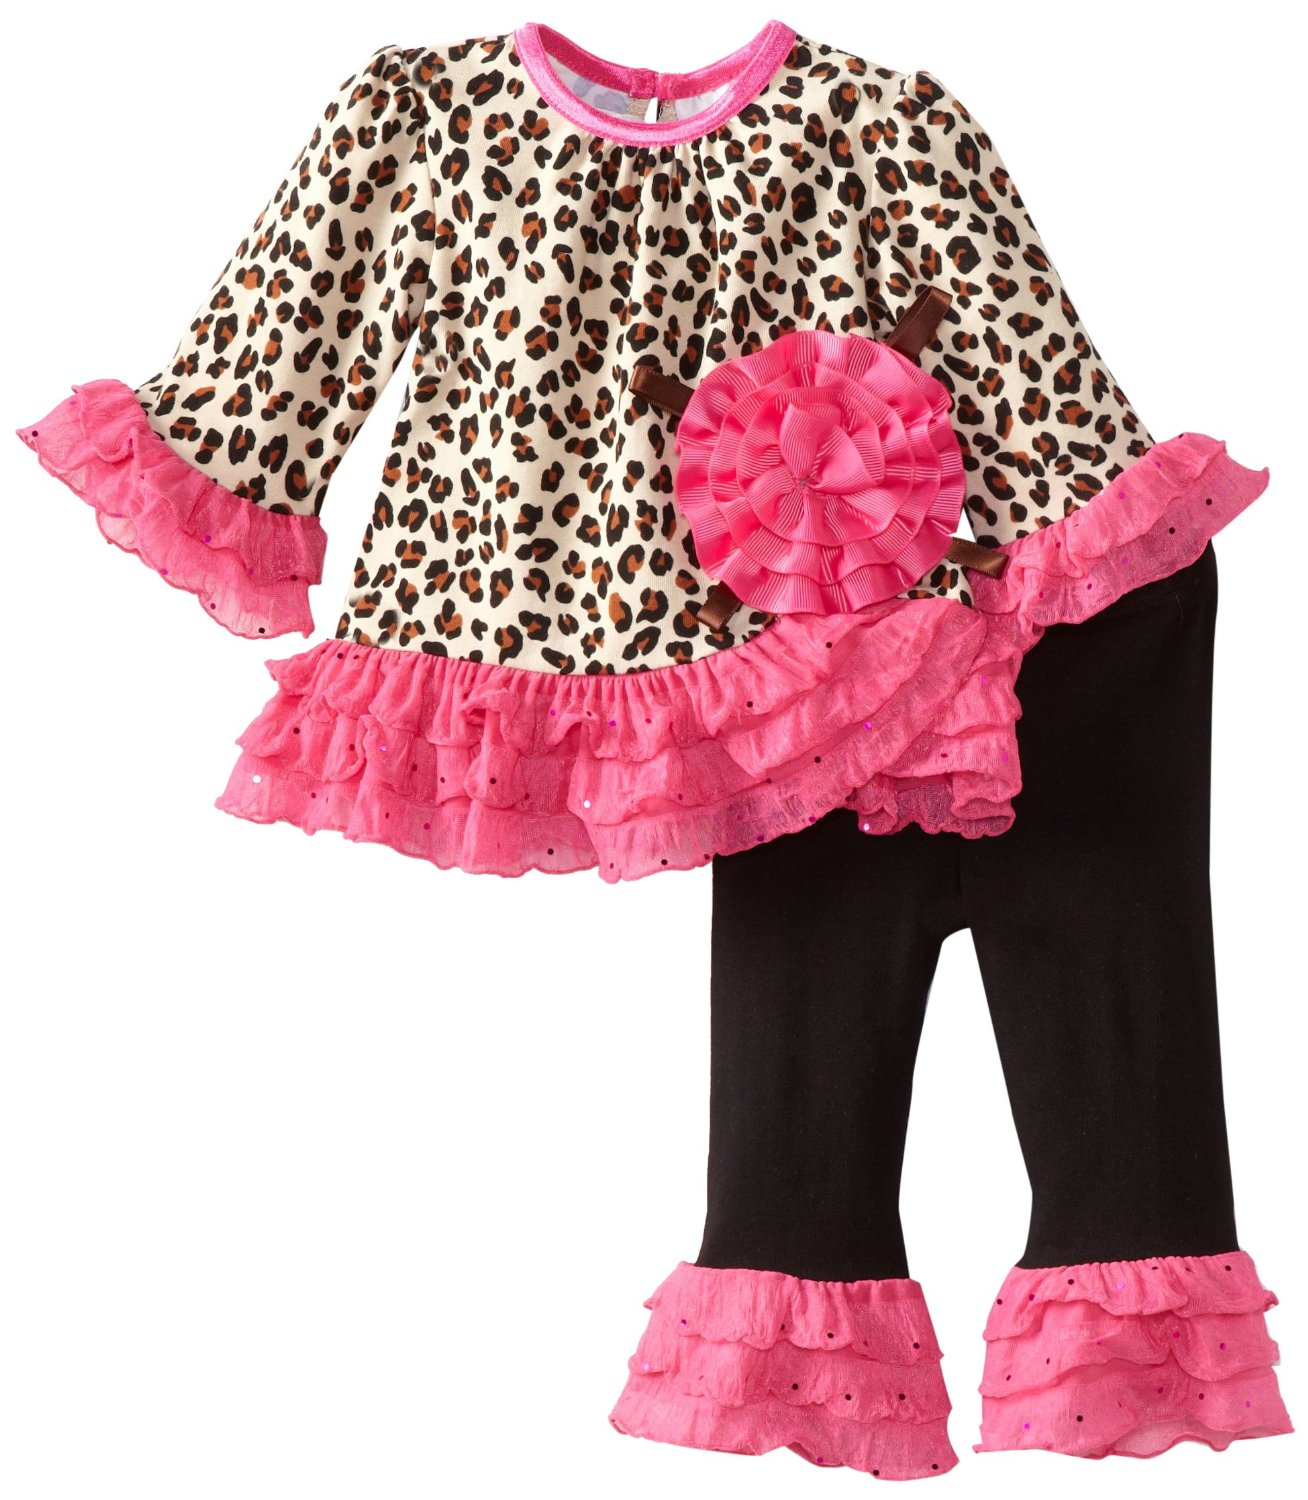 Shop baby girl clothes in the latest styles at Baby Depot. Low prices and a great selection on all clothing for baby girls. Free Shipping available.